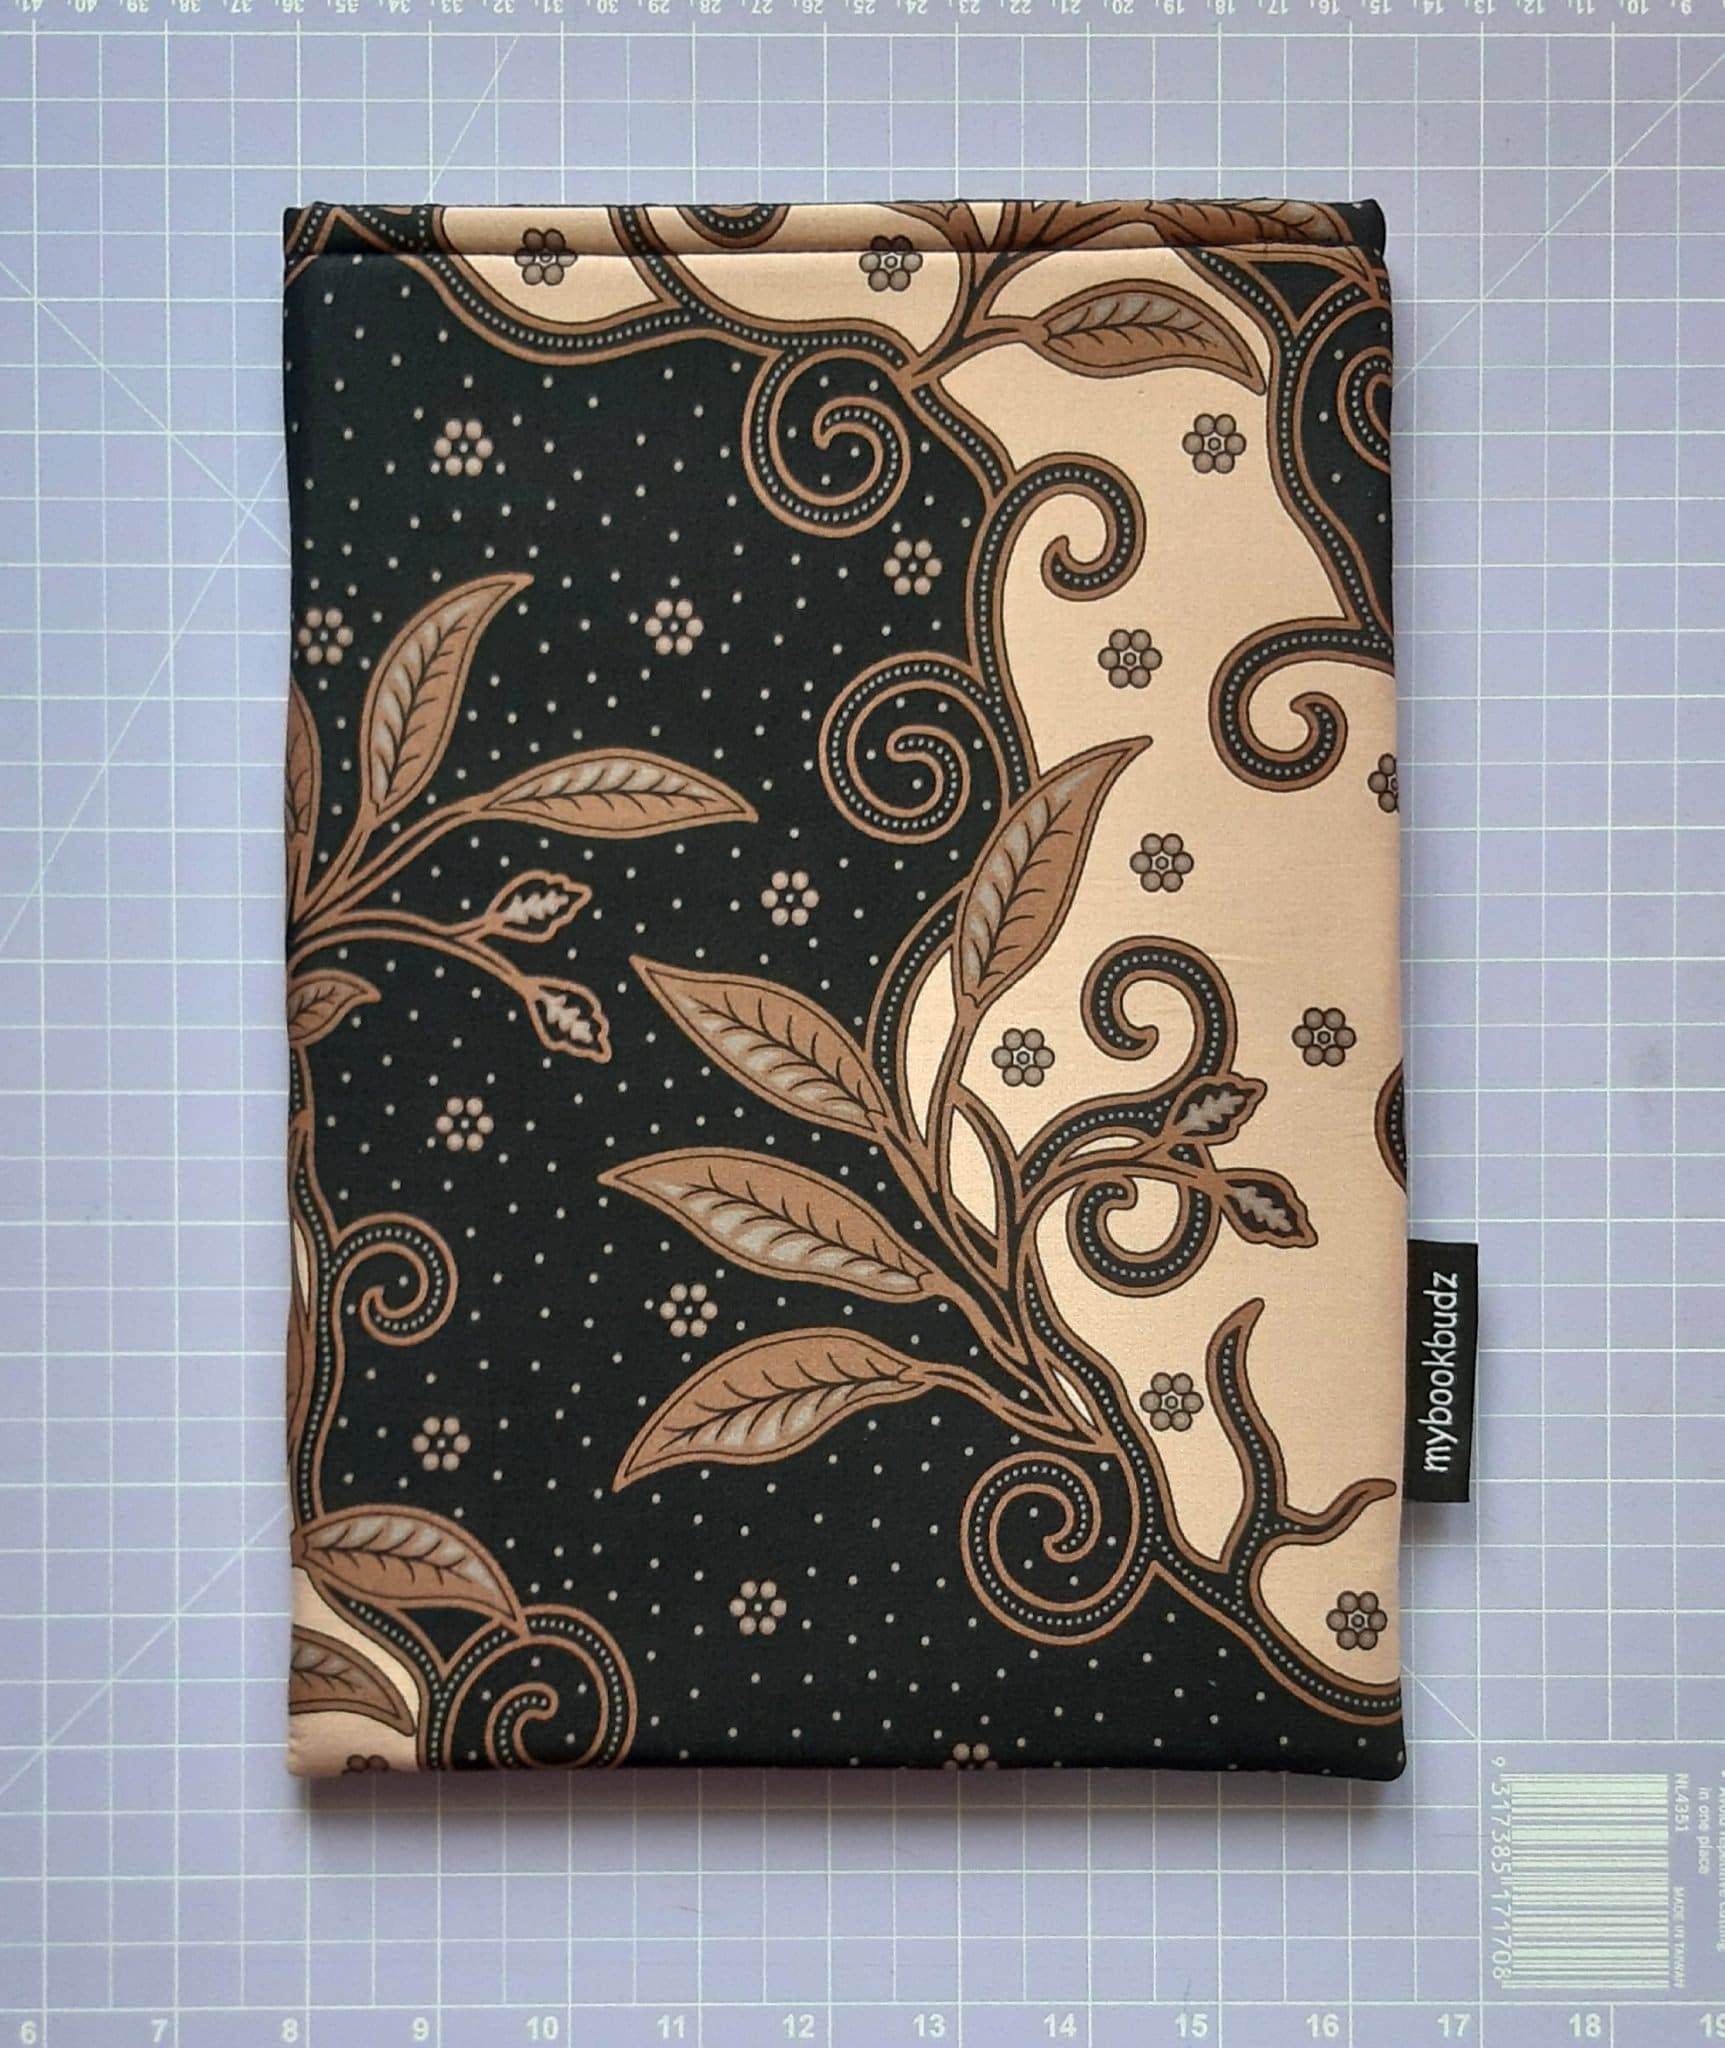 Beige and Black Booksleeve